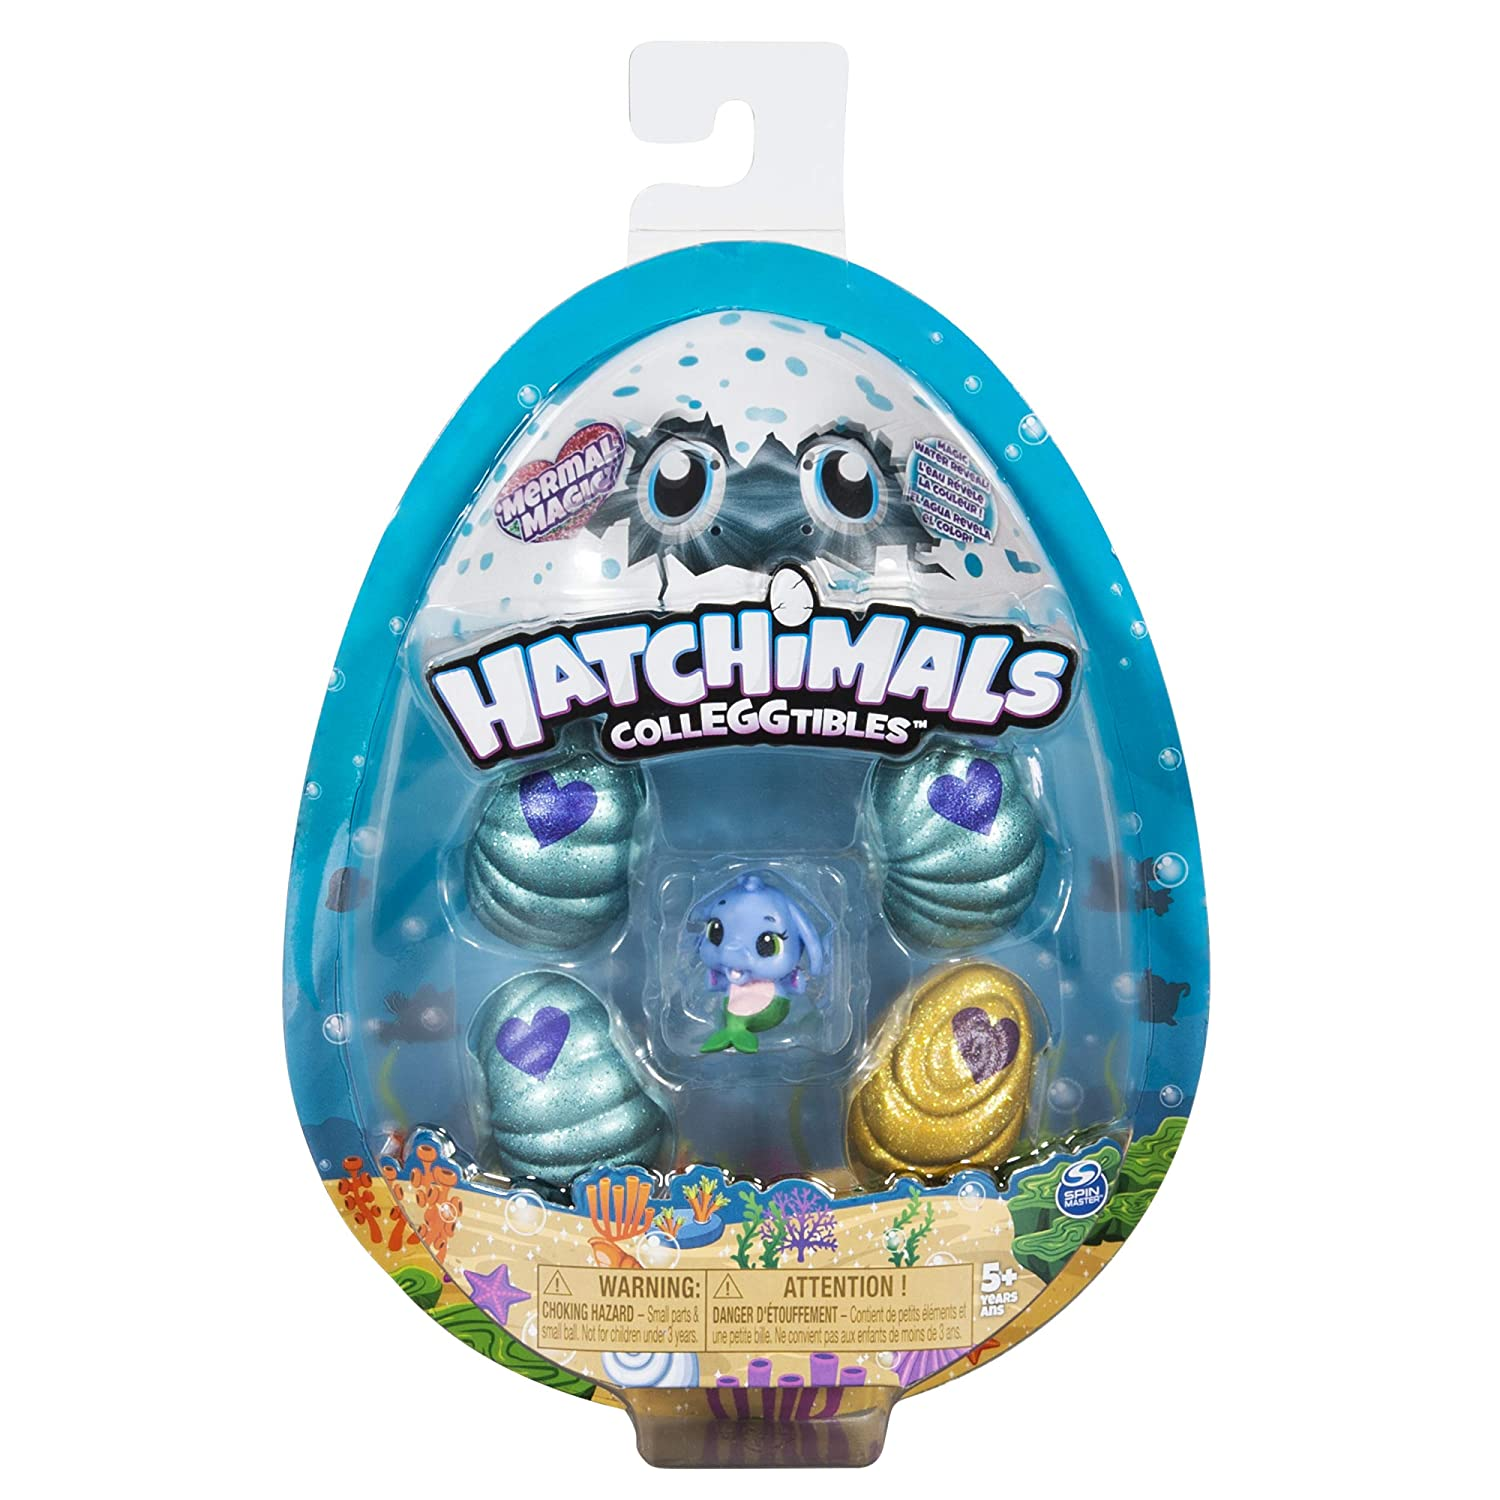 Hatchimals Colleggtibles, Mermal Magic 4 Pack + Bonus with Season 5 for Kids Aged 5 & Up (Styles May Vary)